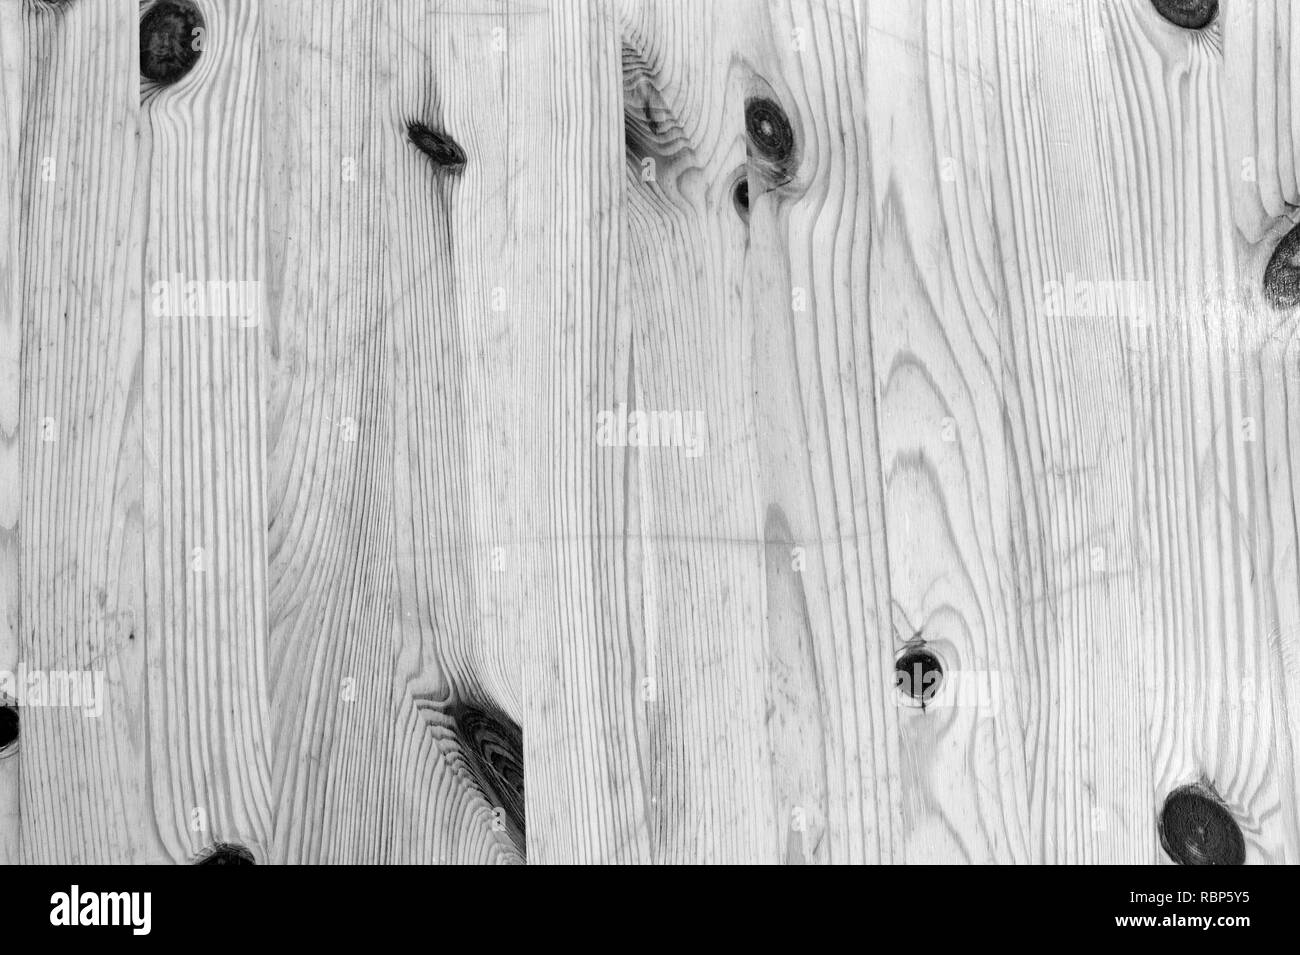 Wood planks background. Wood texture with natural pattern. Wooden board surface. Decor or design. Timber wall for copy space - Stock Image